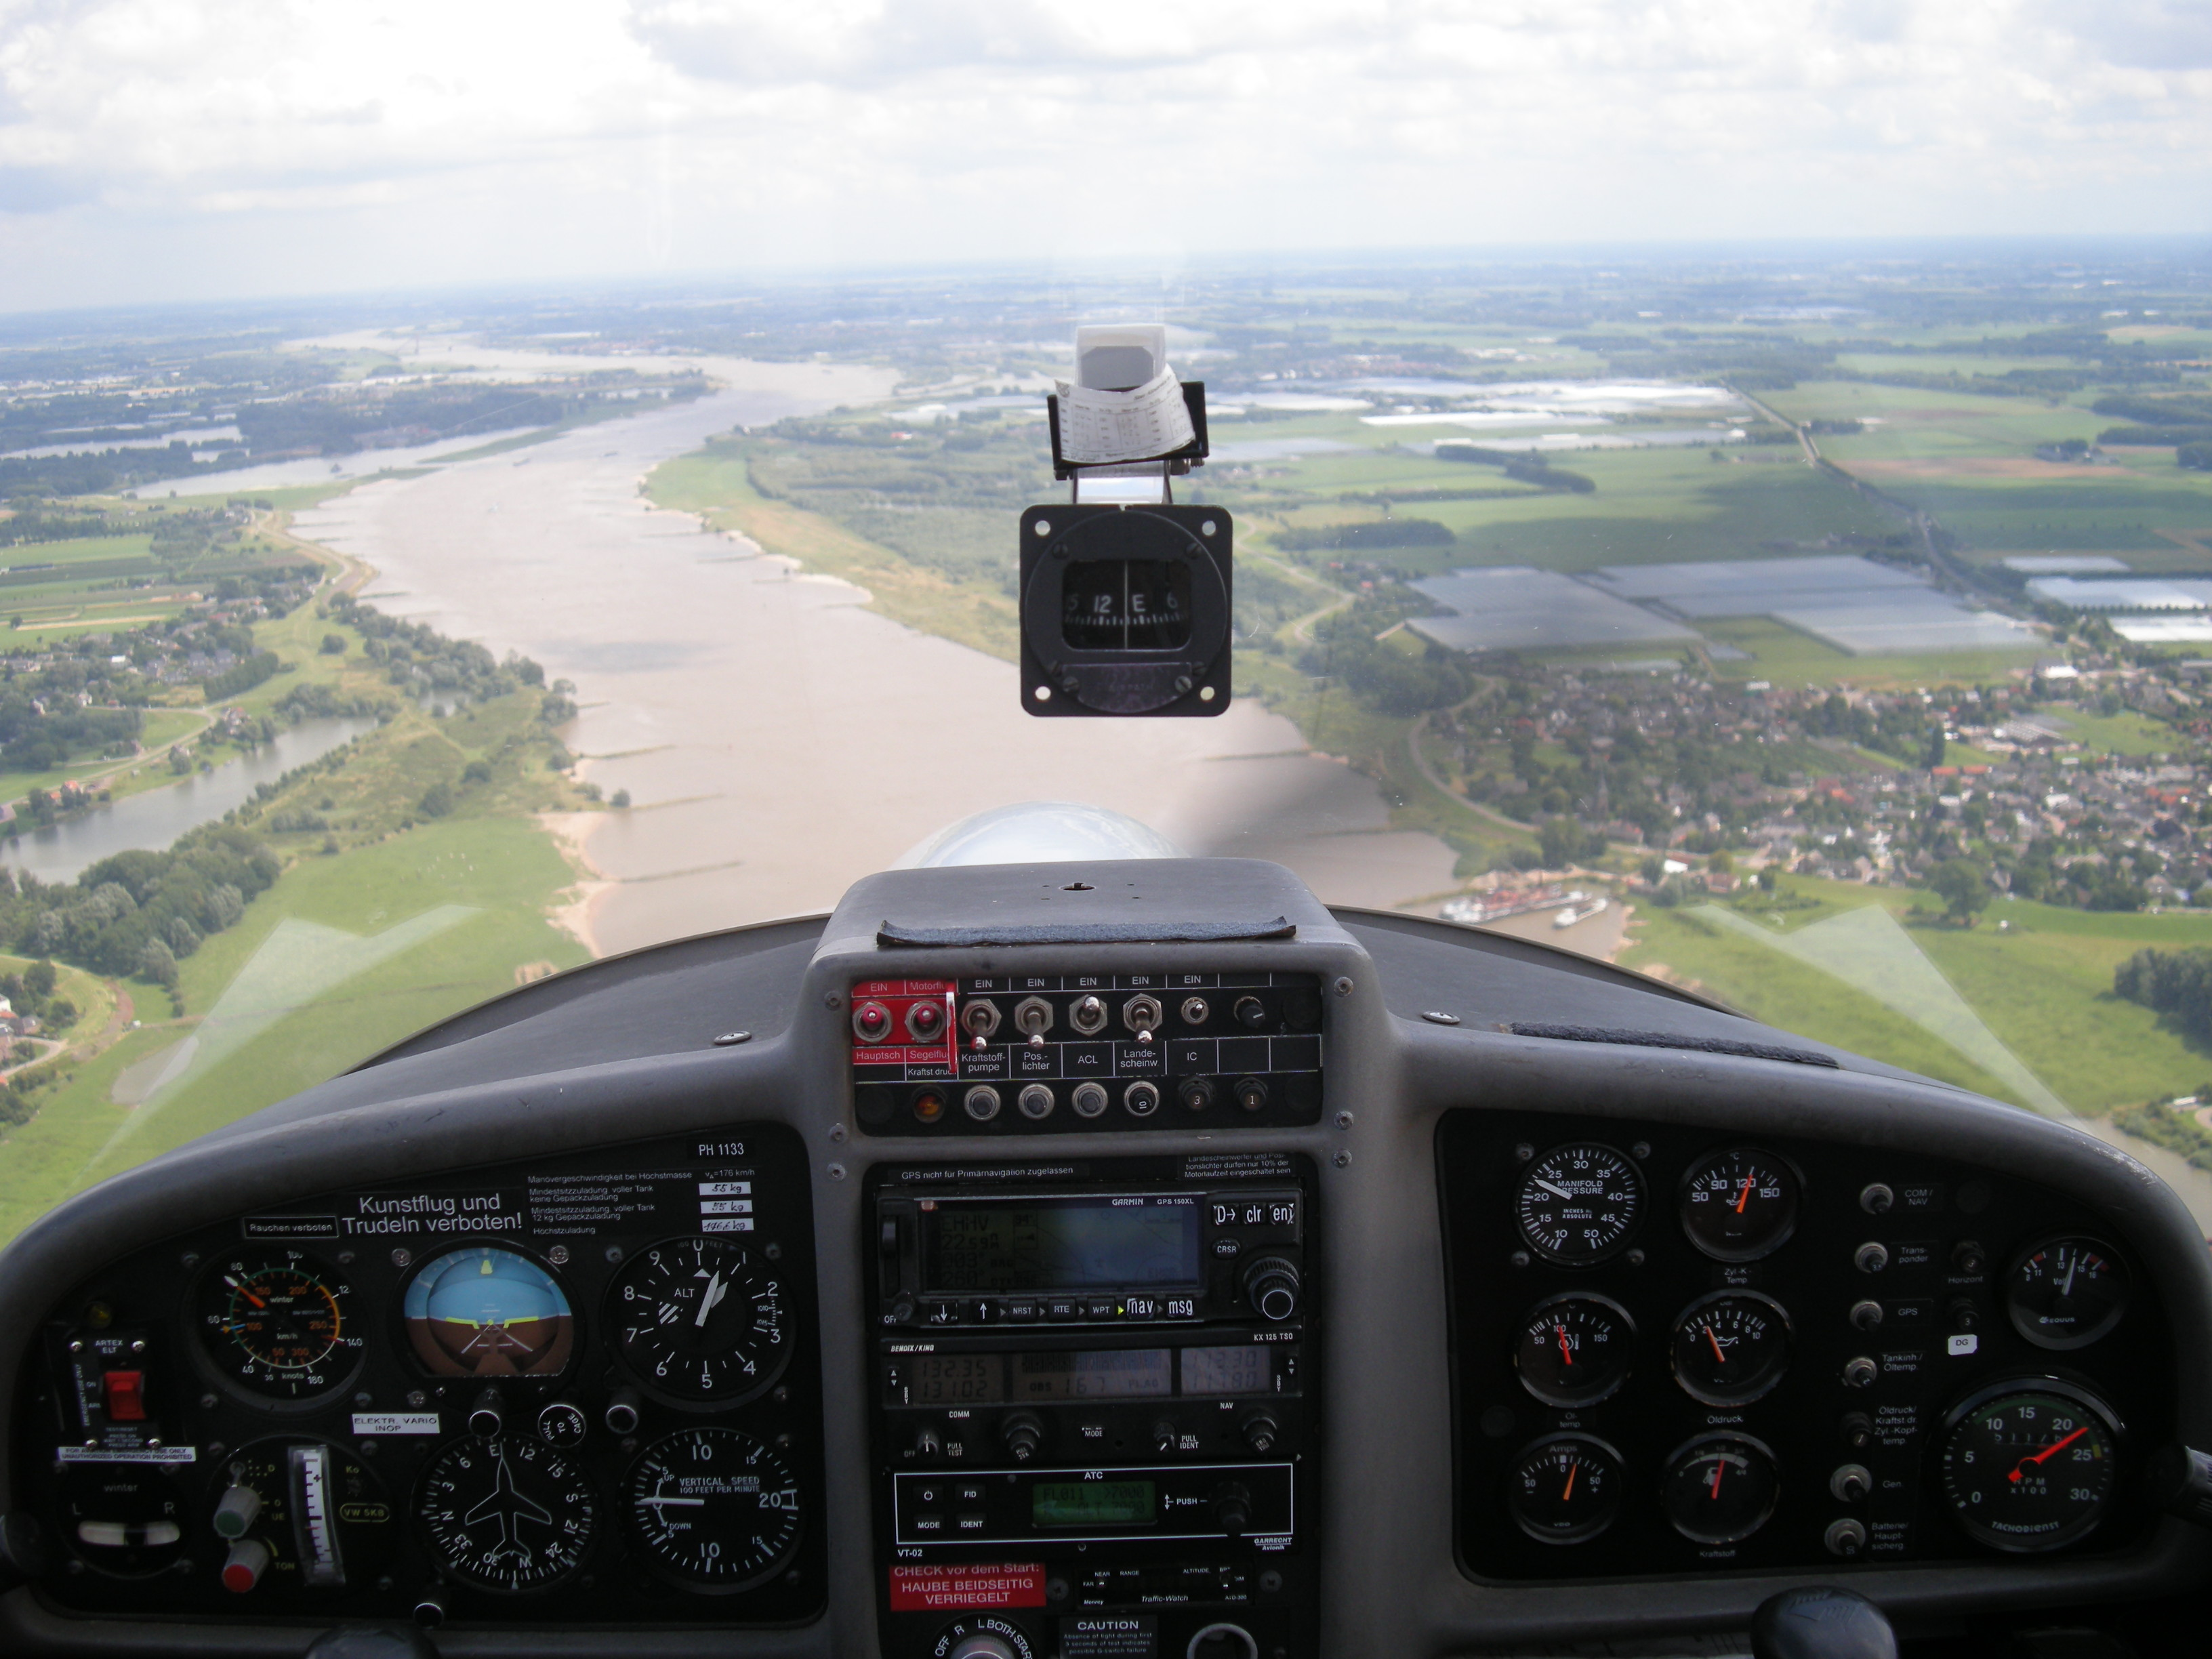 River flying 2